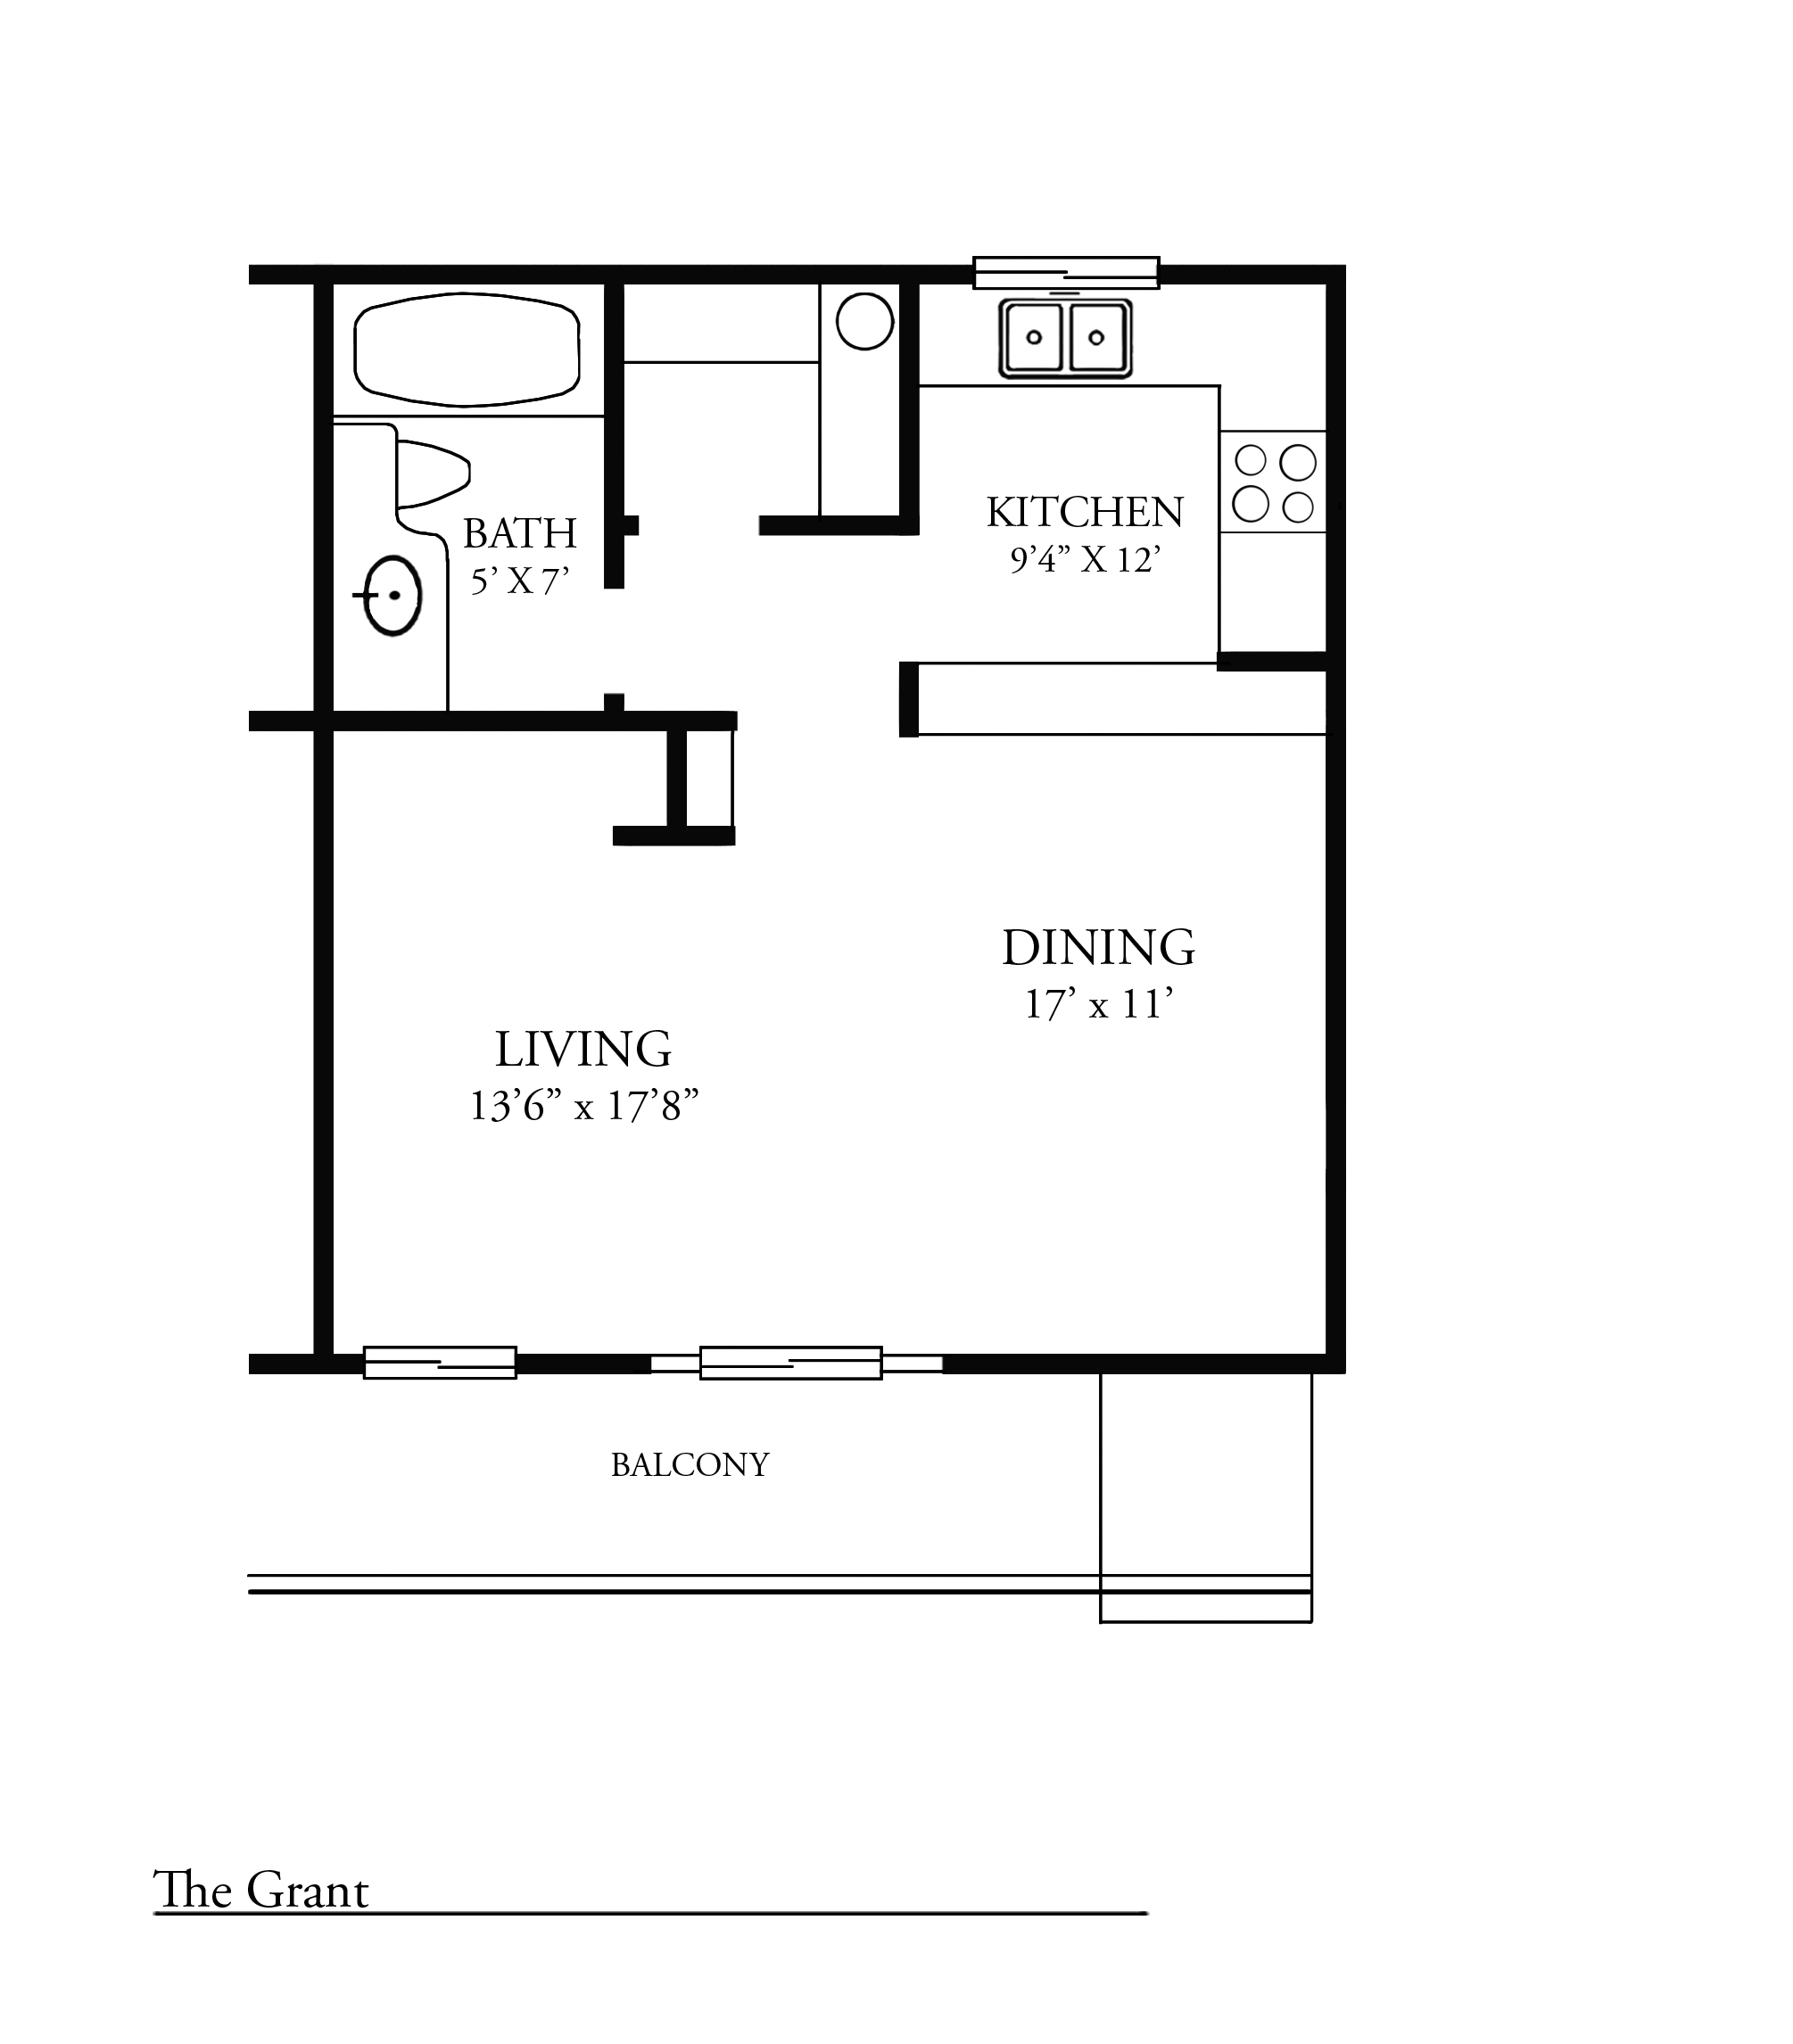 South 111th Street Studio - 453-469 Sq. Ft. - The Grant/S.111th St.